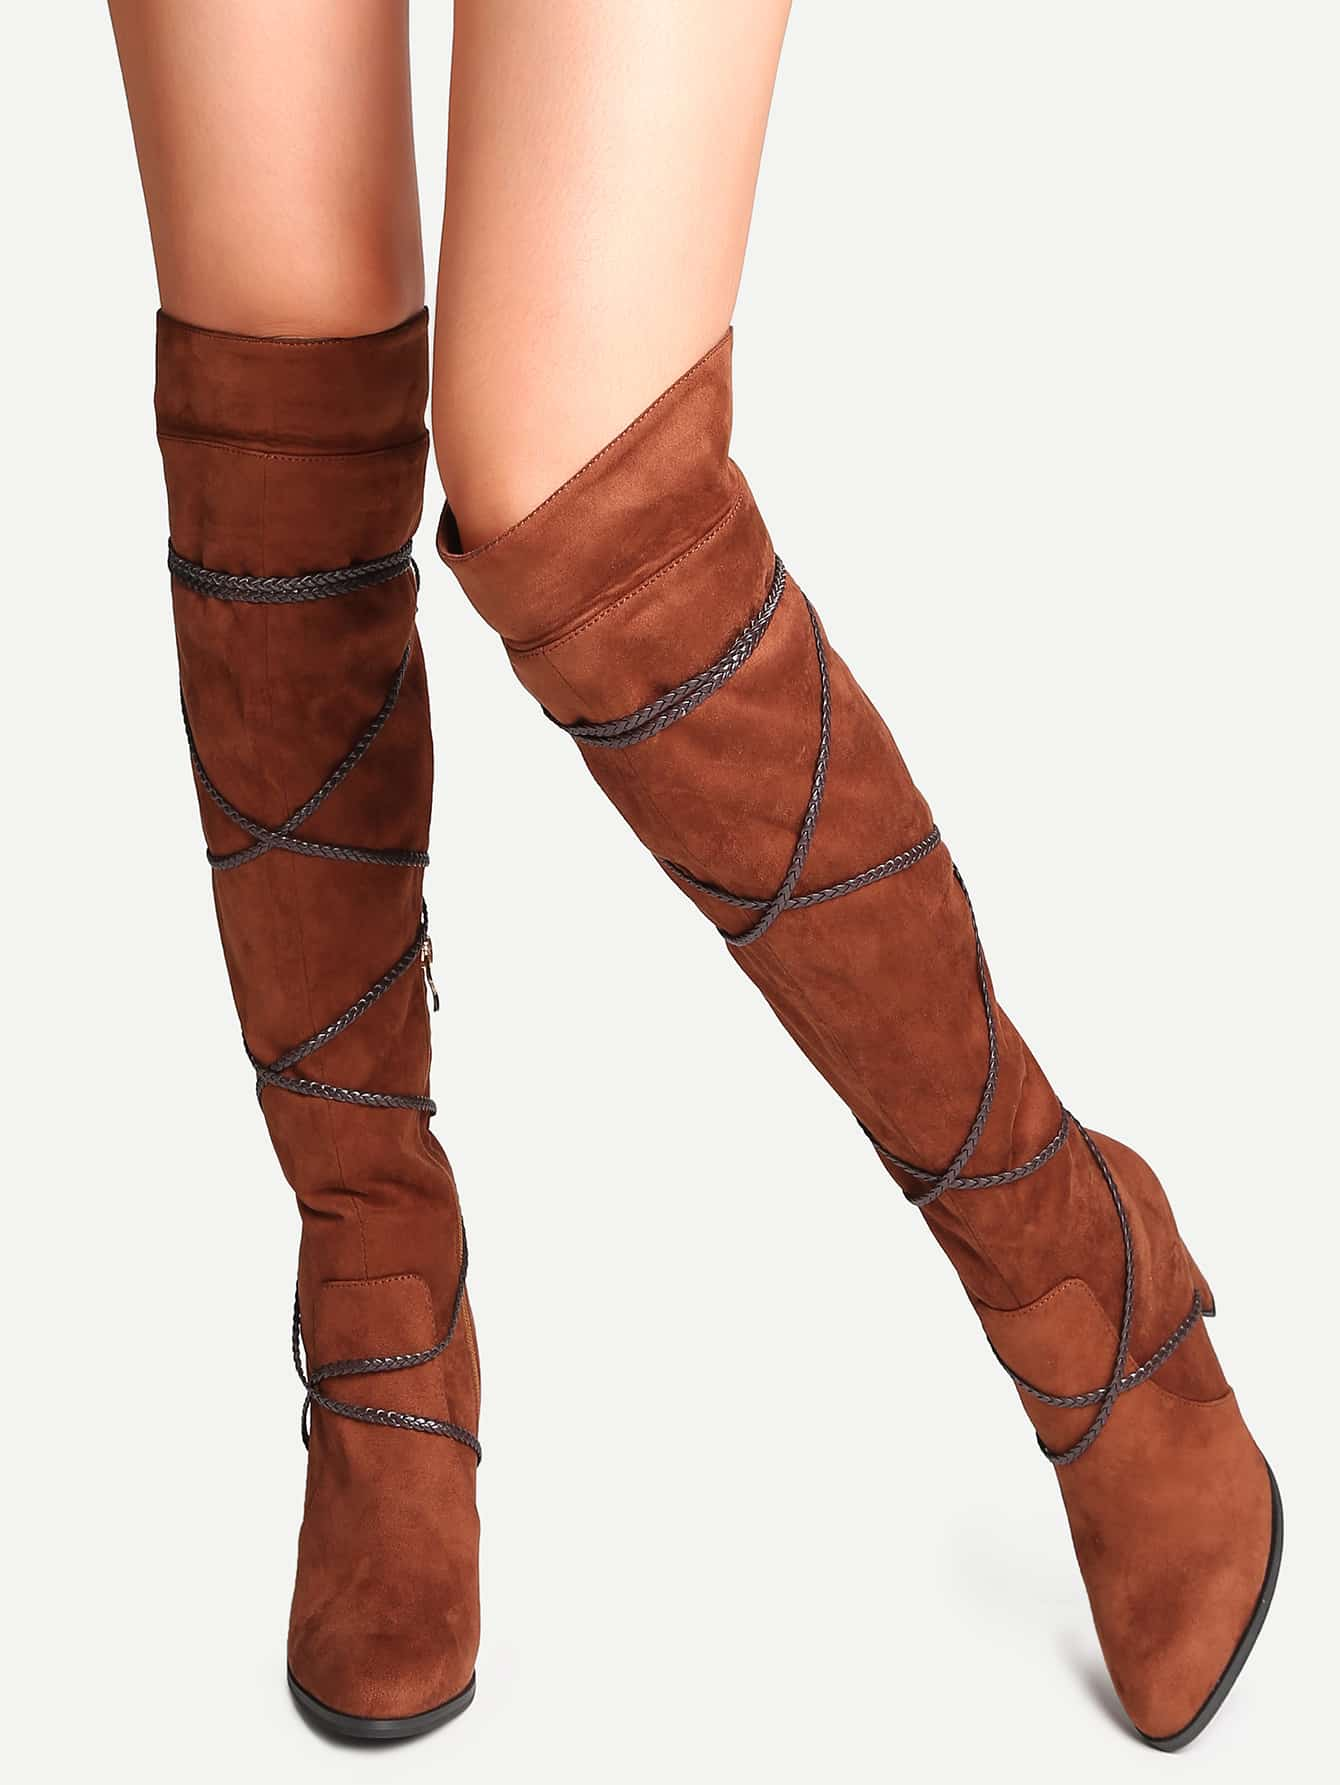 Brown Point Toe Tie Back Fold Over BootsBrown Point Toe Tie Back Fold Over Boots<br><br>color: Brown<br>size: EUR36,EUR37,EUR38,EUR39,EUR40,EUR41